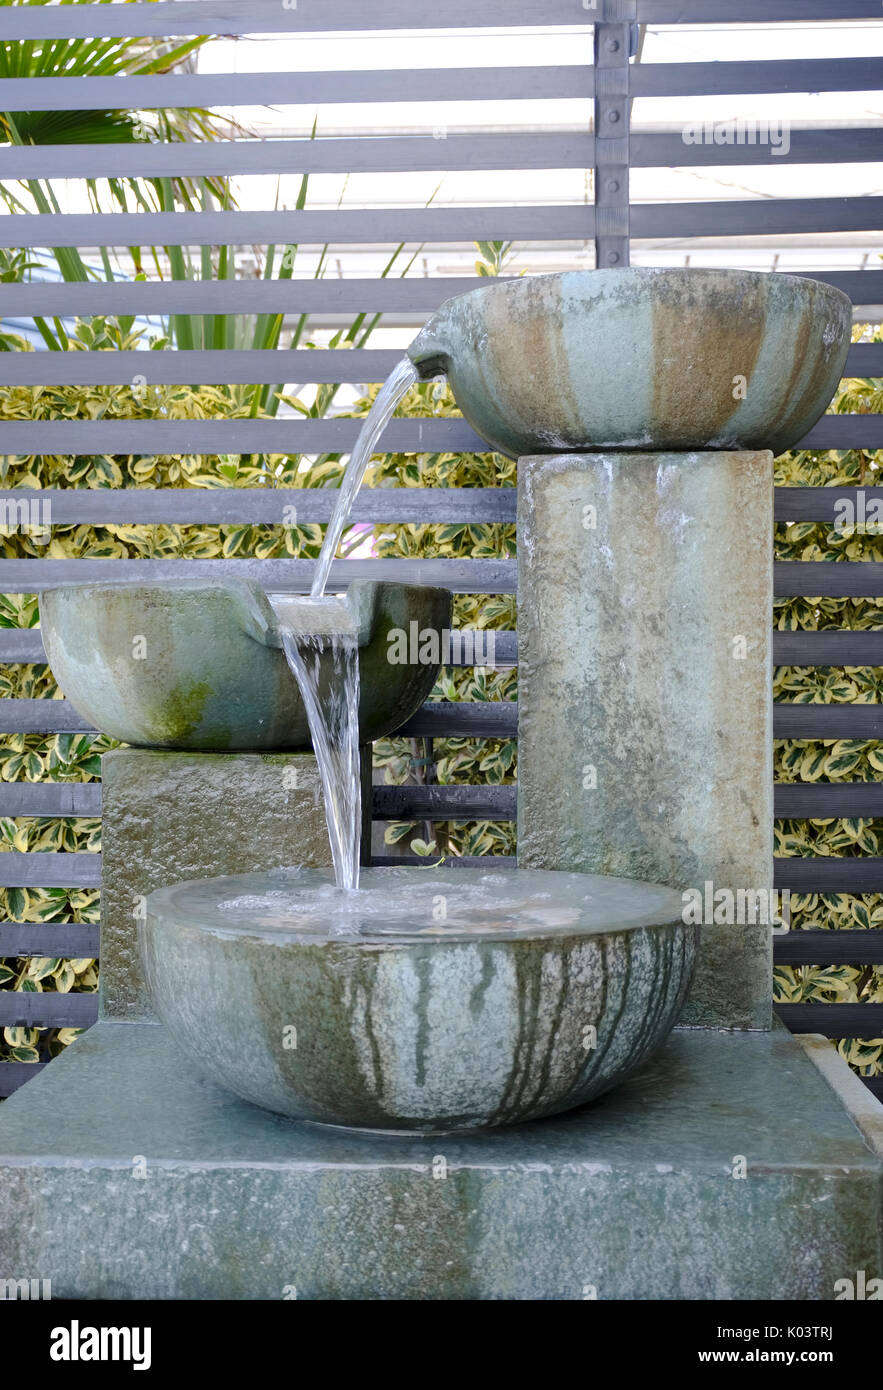 Stone garden fountain with water flowing over 3 bowls. - Stock Image